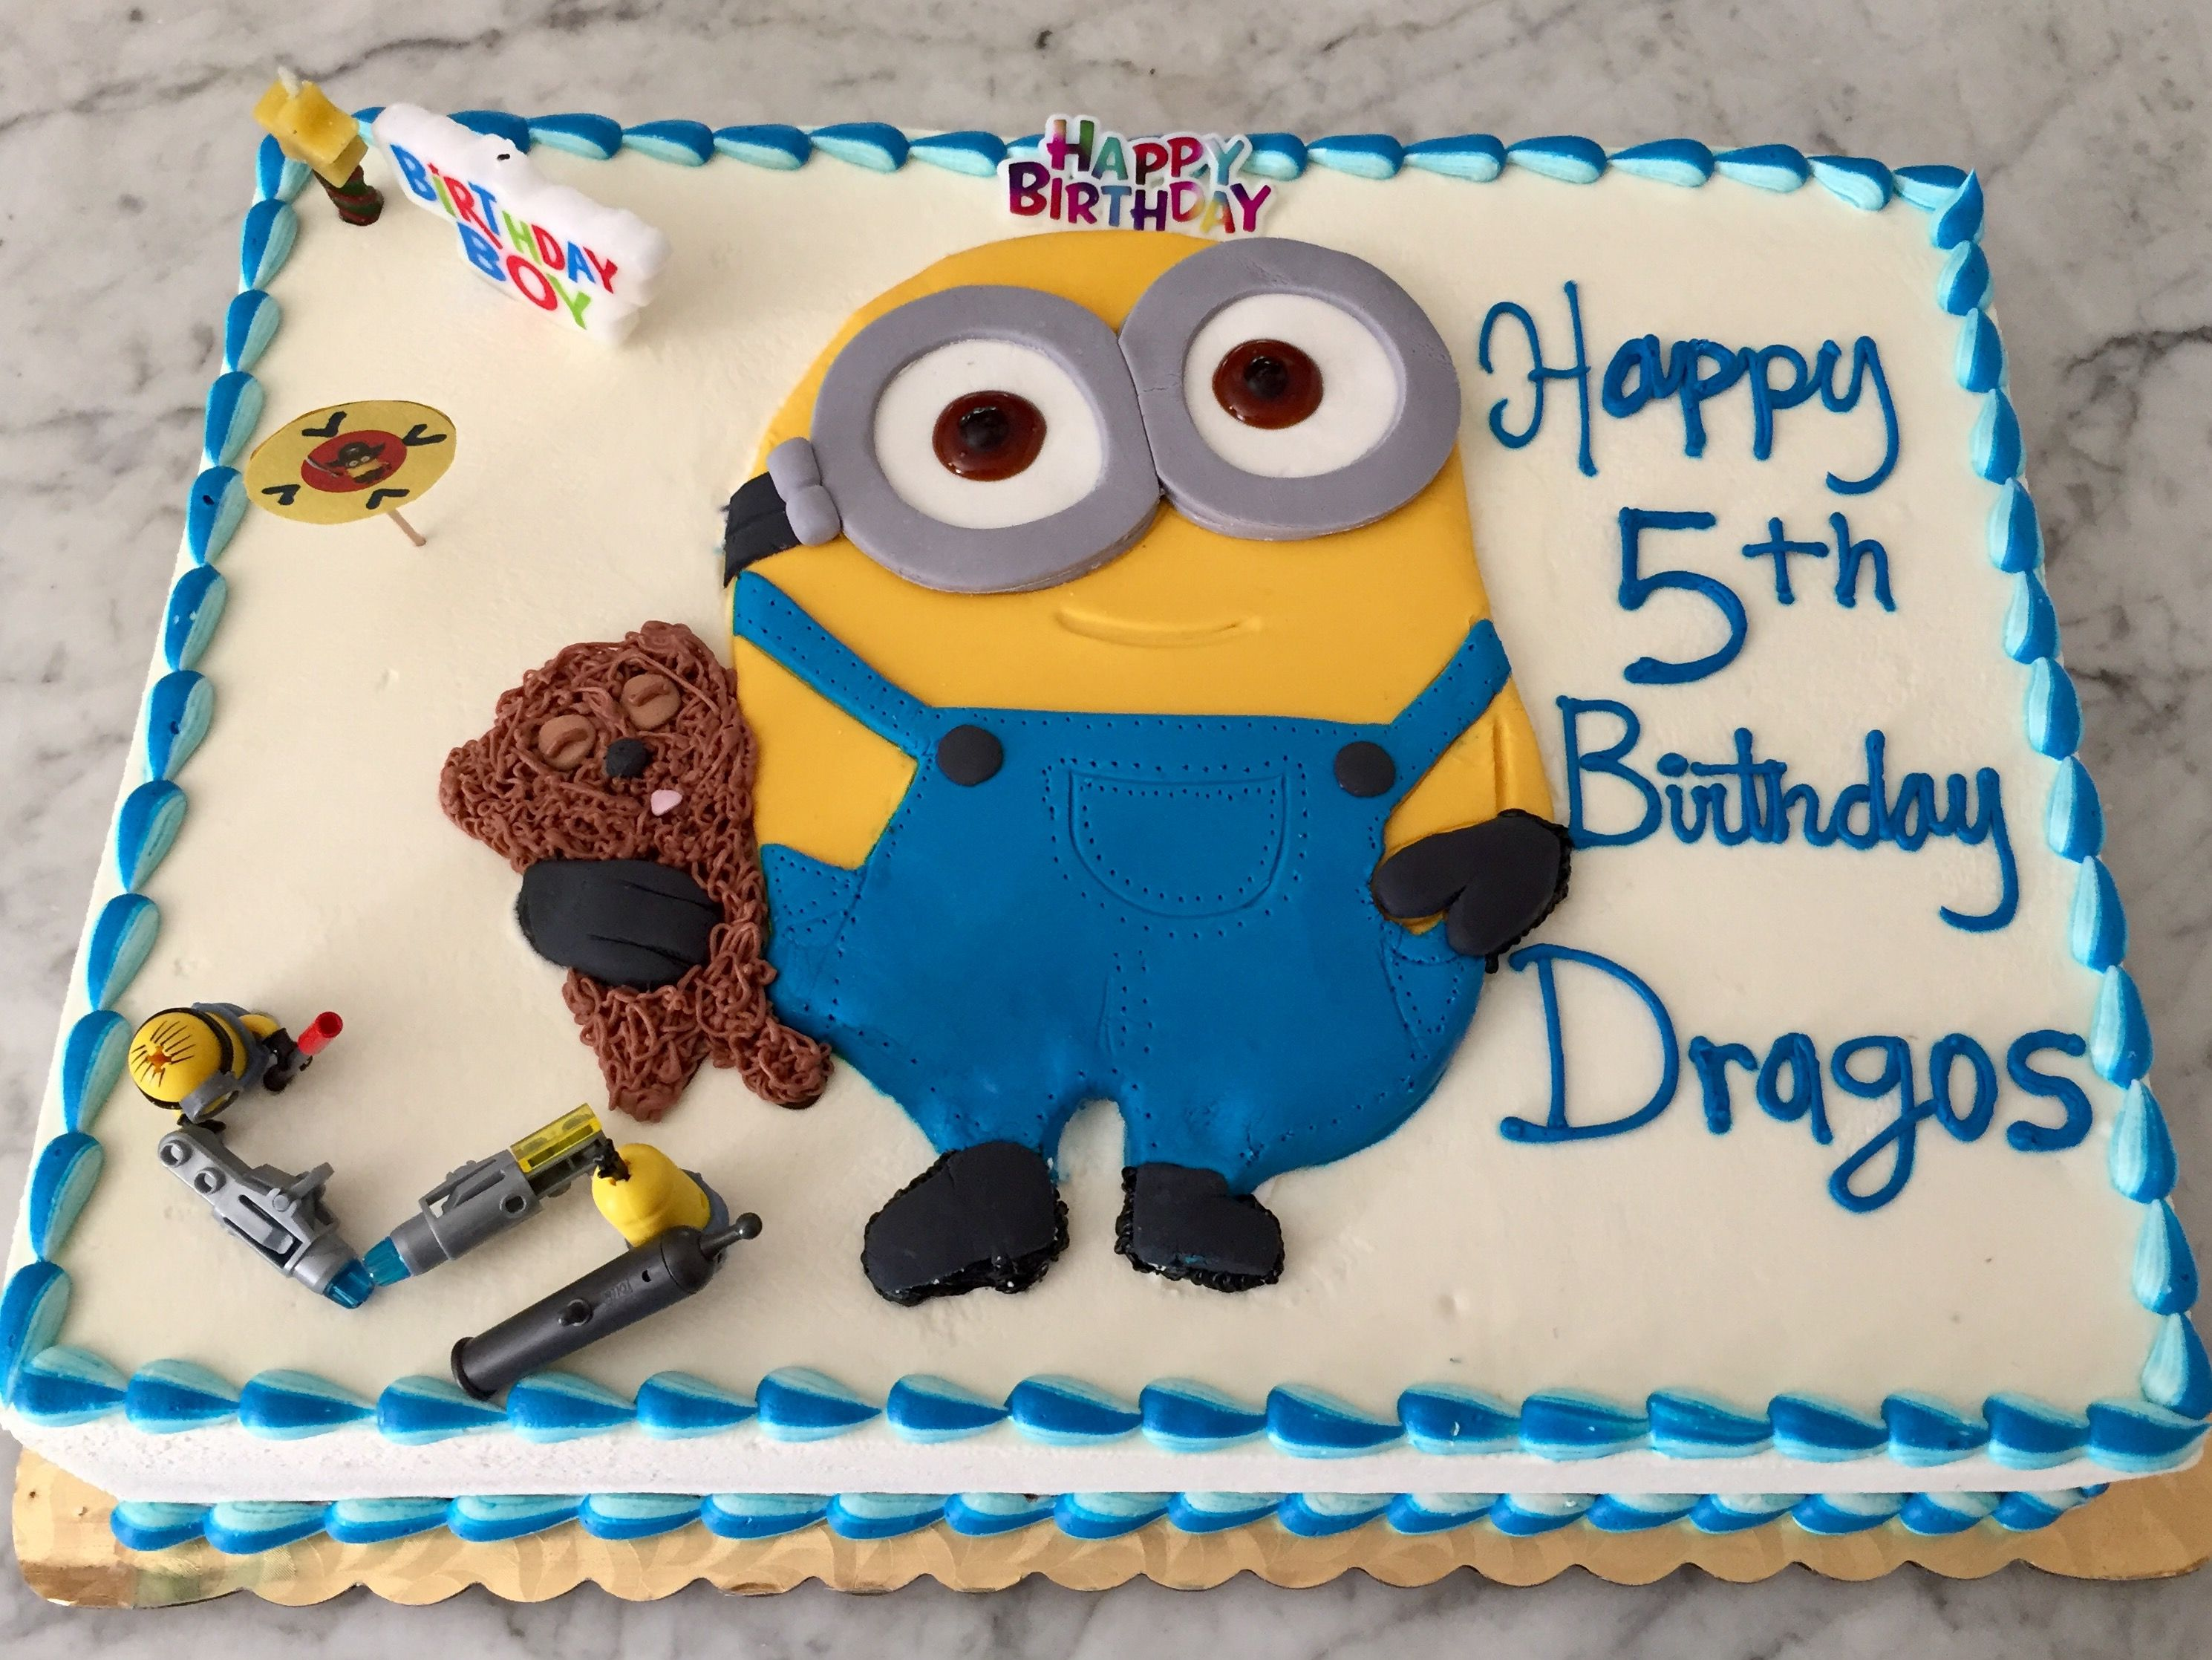 Superb Minion Birthday Cake My Five Year Old Loved This Fresh Whipped Funny Birthday Cards Online Inifodamsfinfo